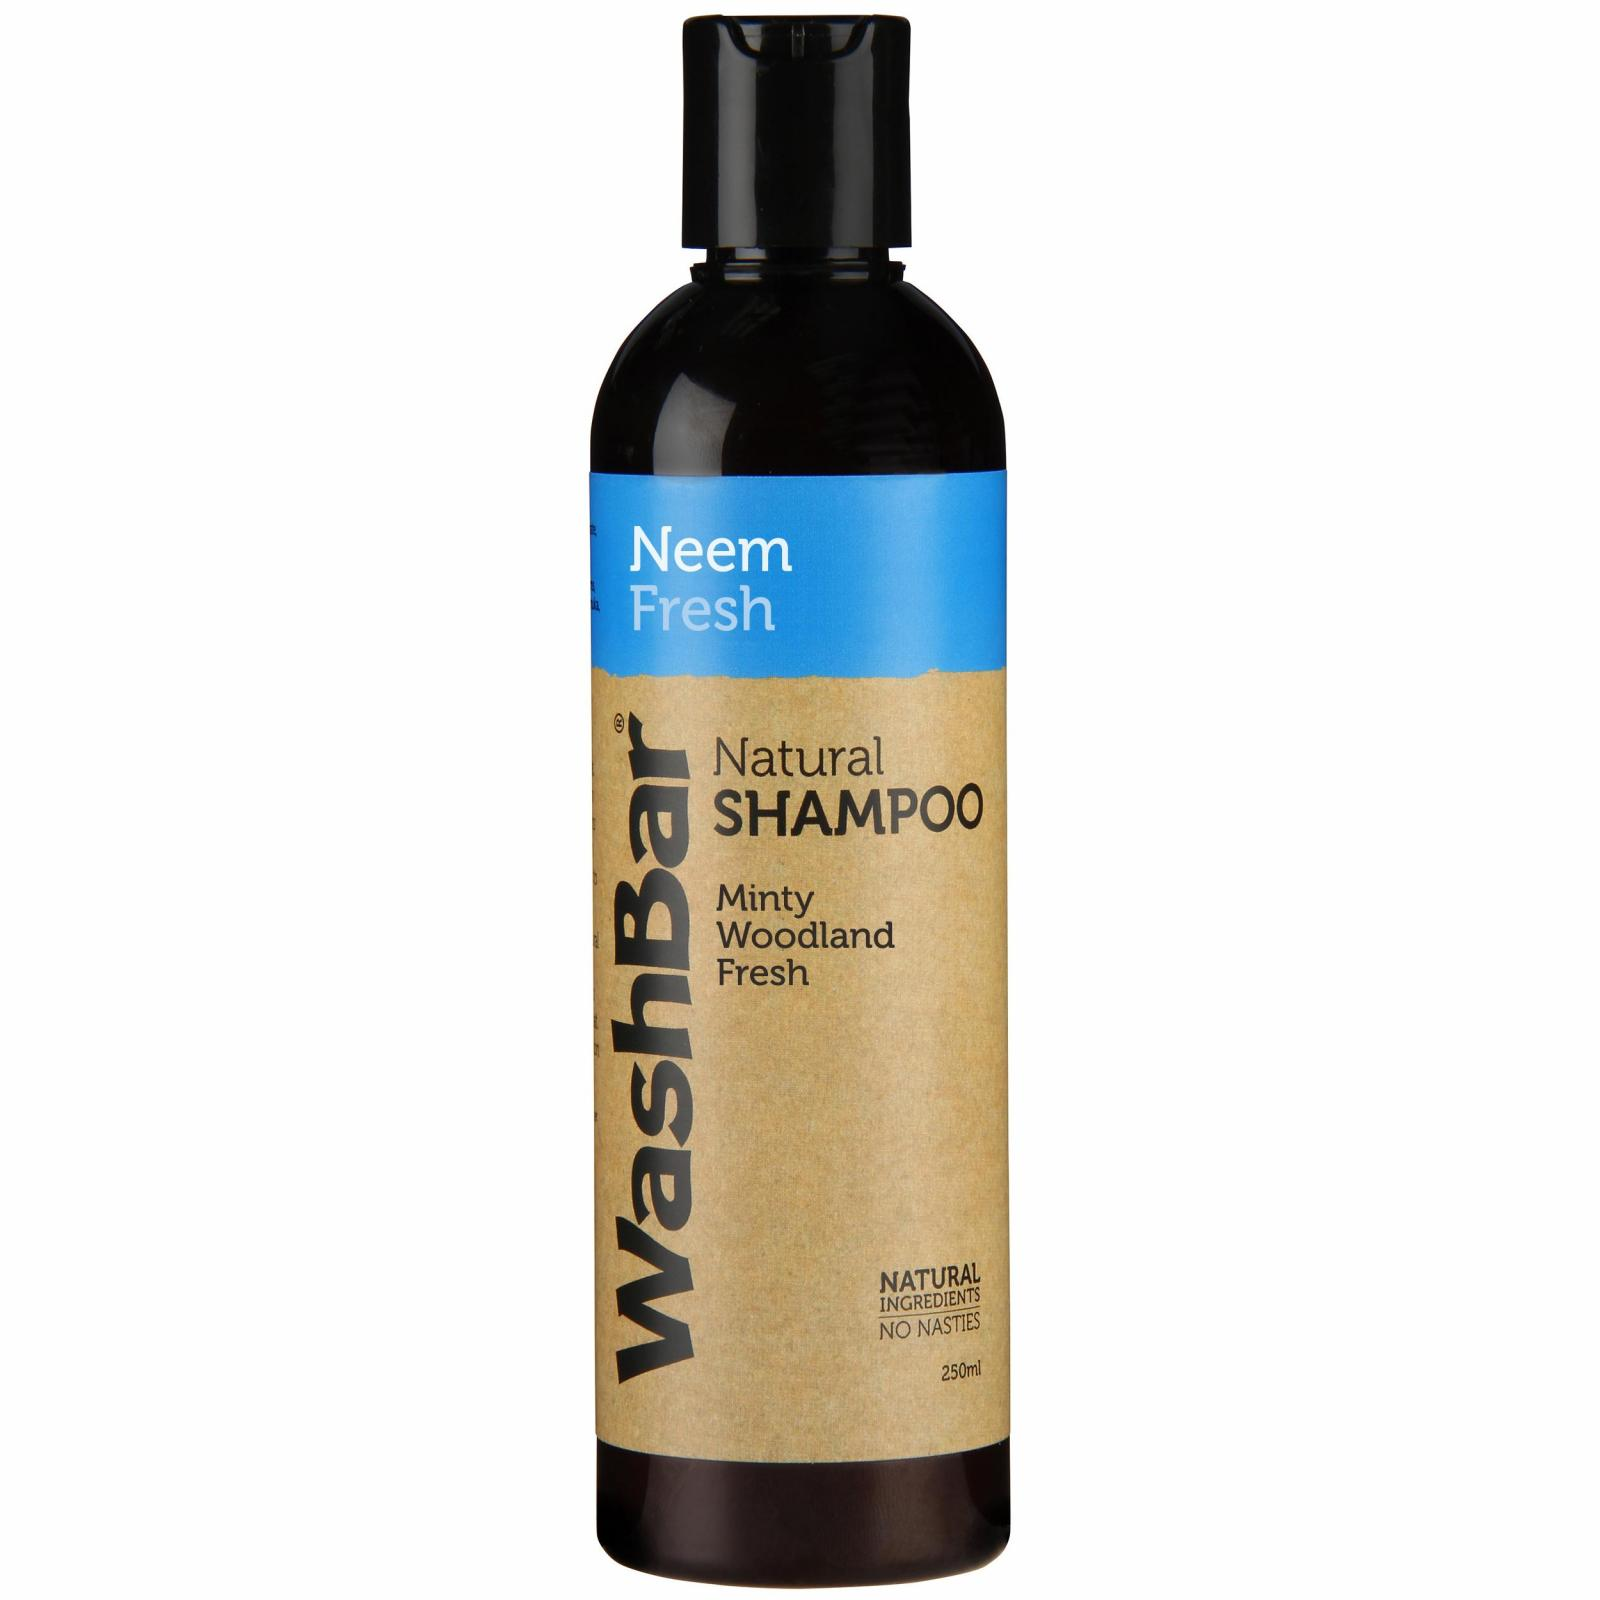 Washbar WashBar Natural Shampoo Neem Fresh 250ml